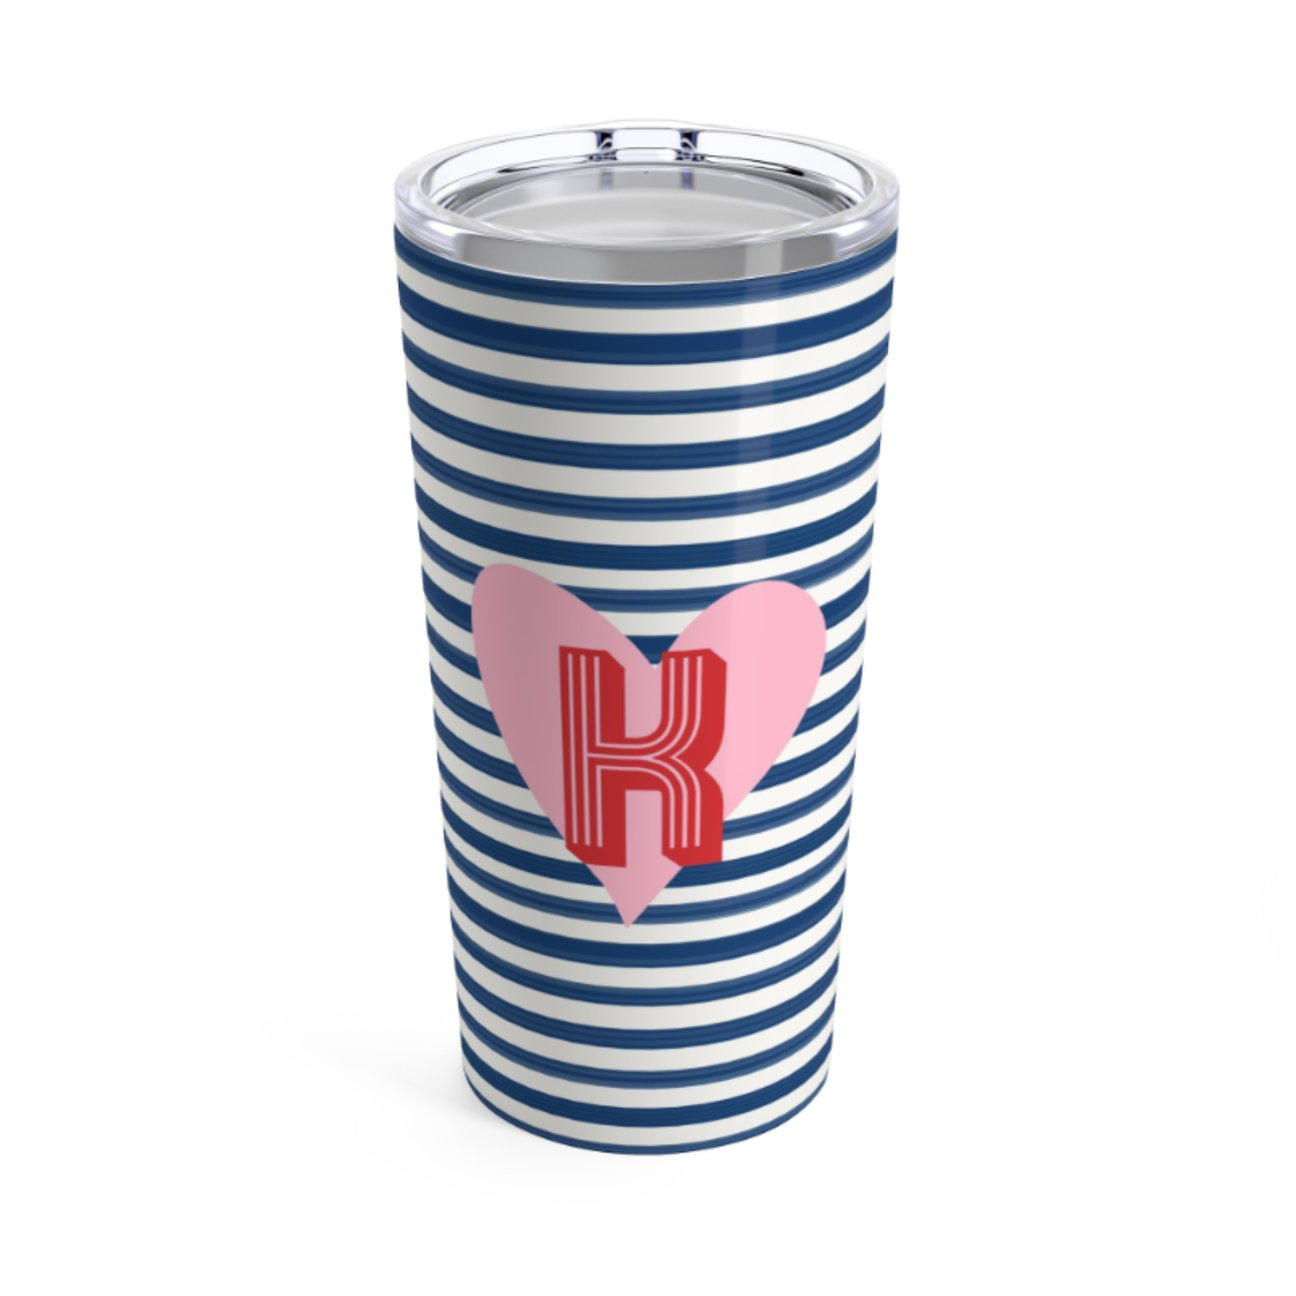 STRIPES & HEARTS TUMBLER - Out of the Box NY Gifts